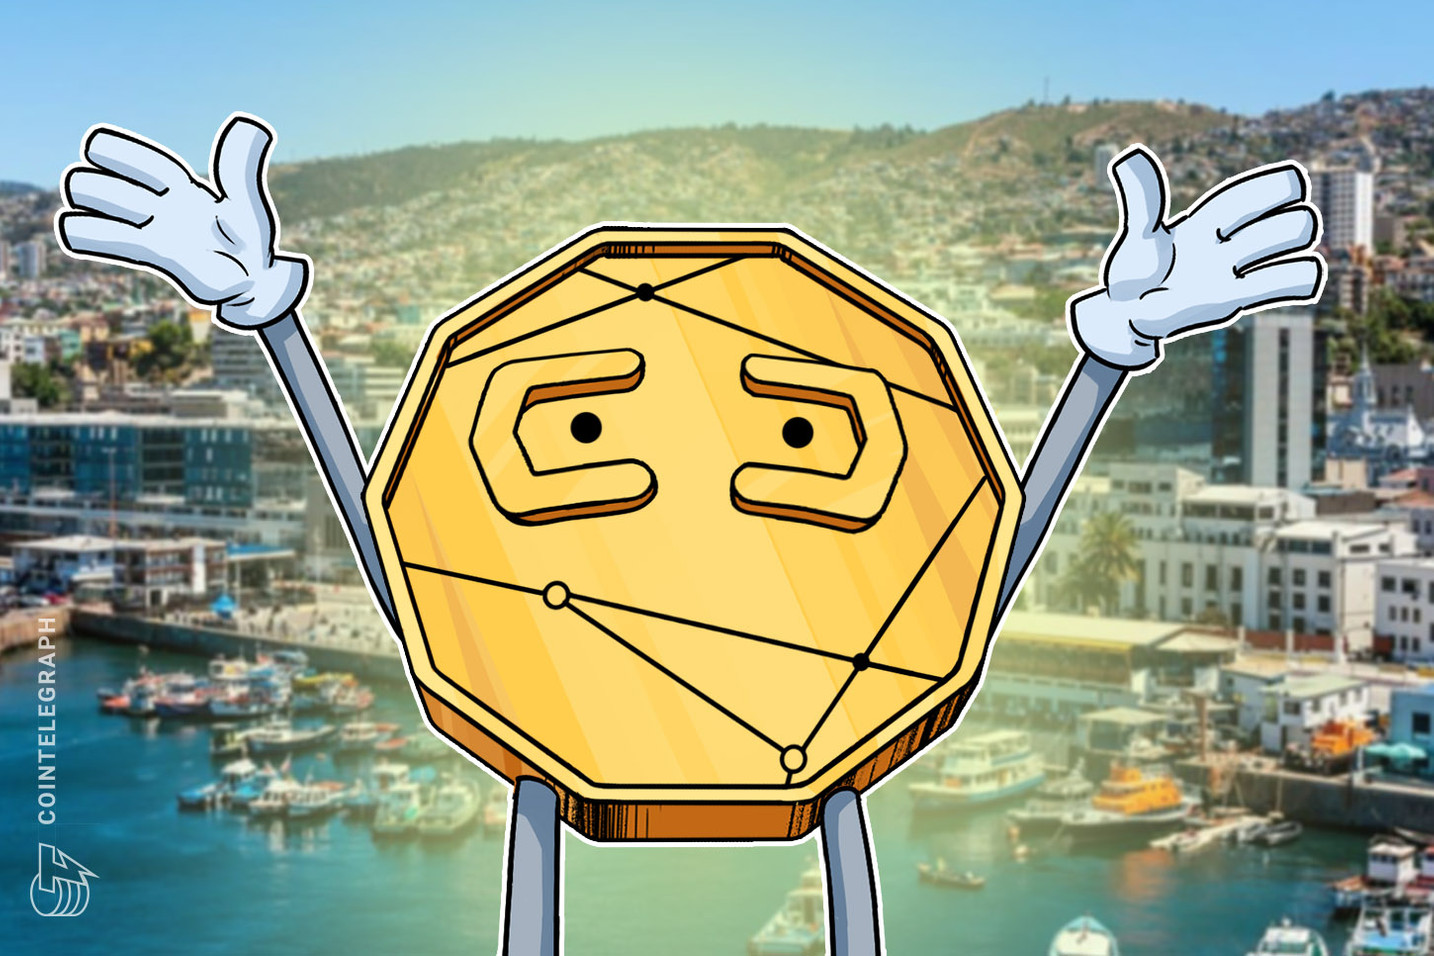 Only 39 Percent of Chileans Are Aware of Cryptocurrencies, Study Shows